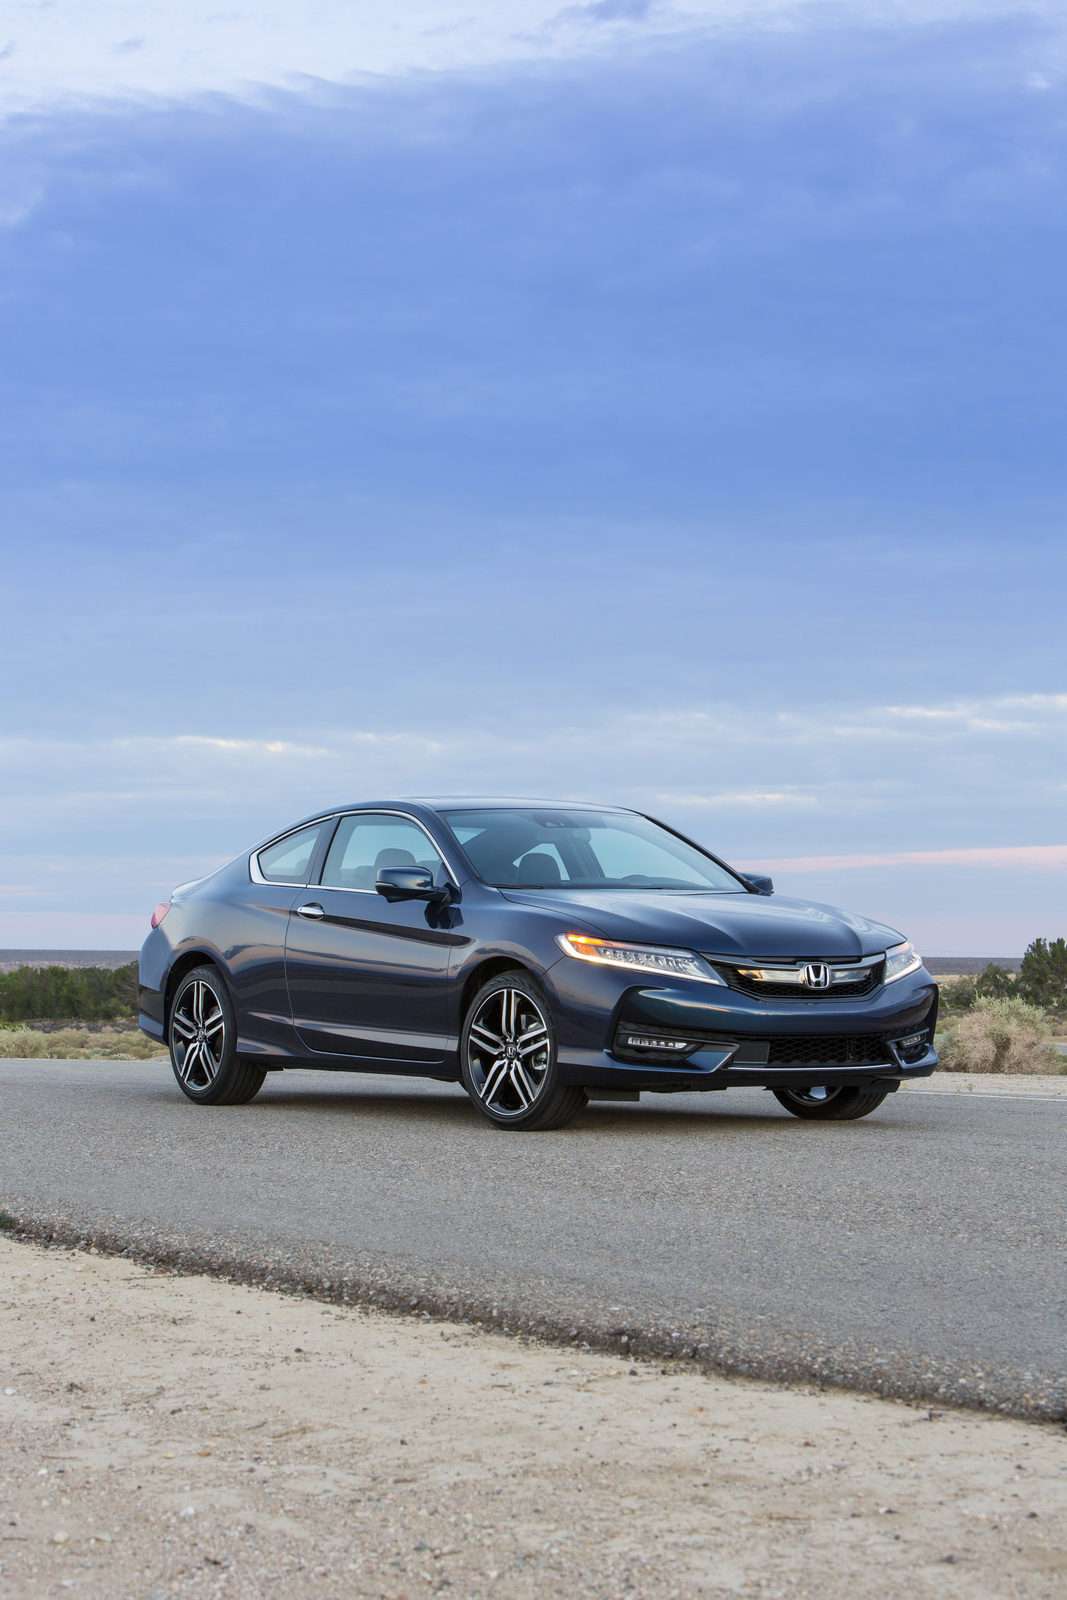 2016 Accord Coupe: ��� ����������?